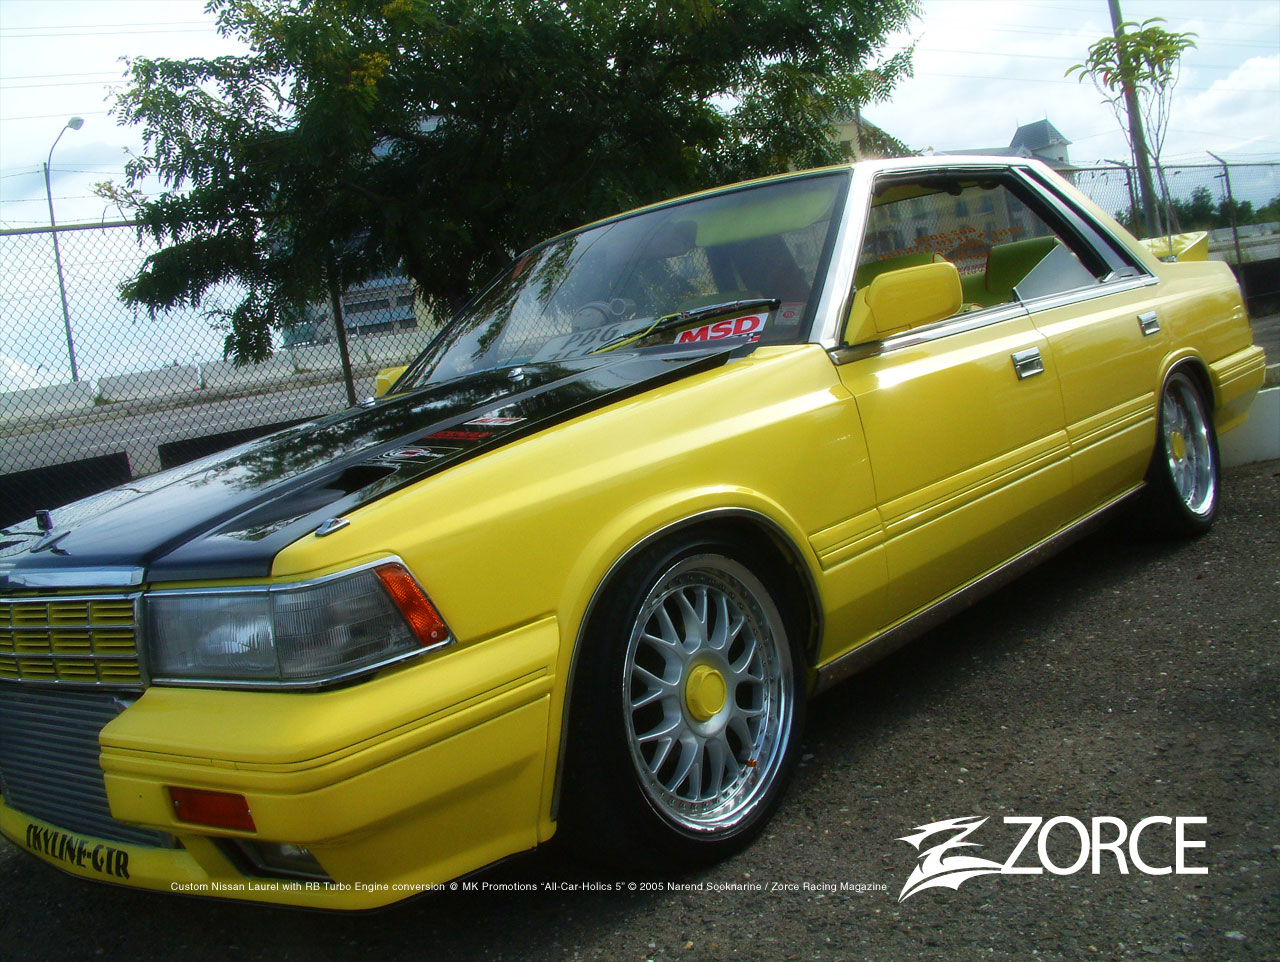 Nissan Laurel: 12 фото